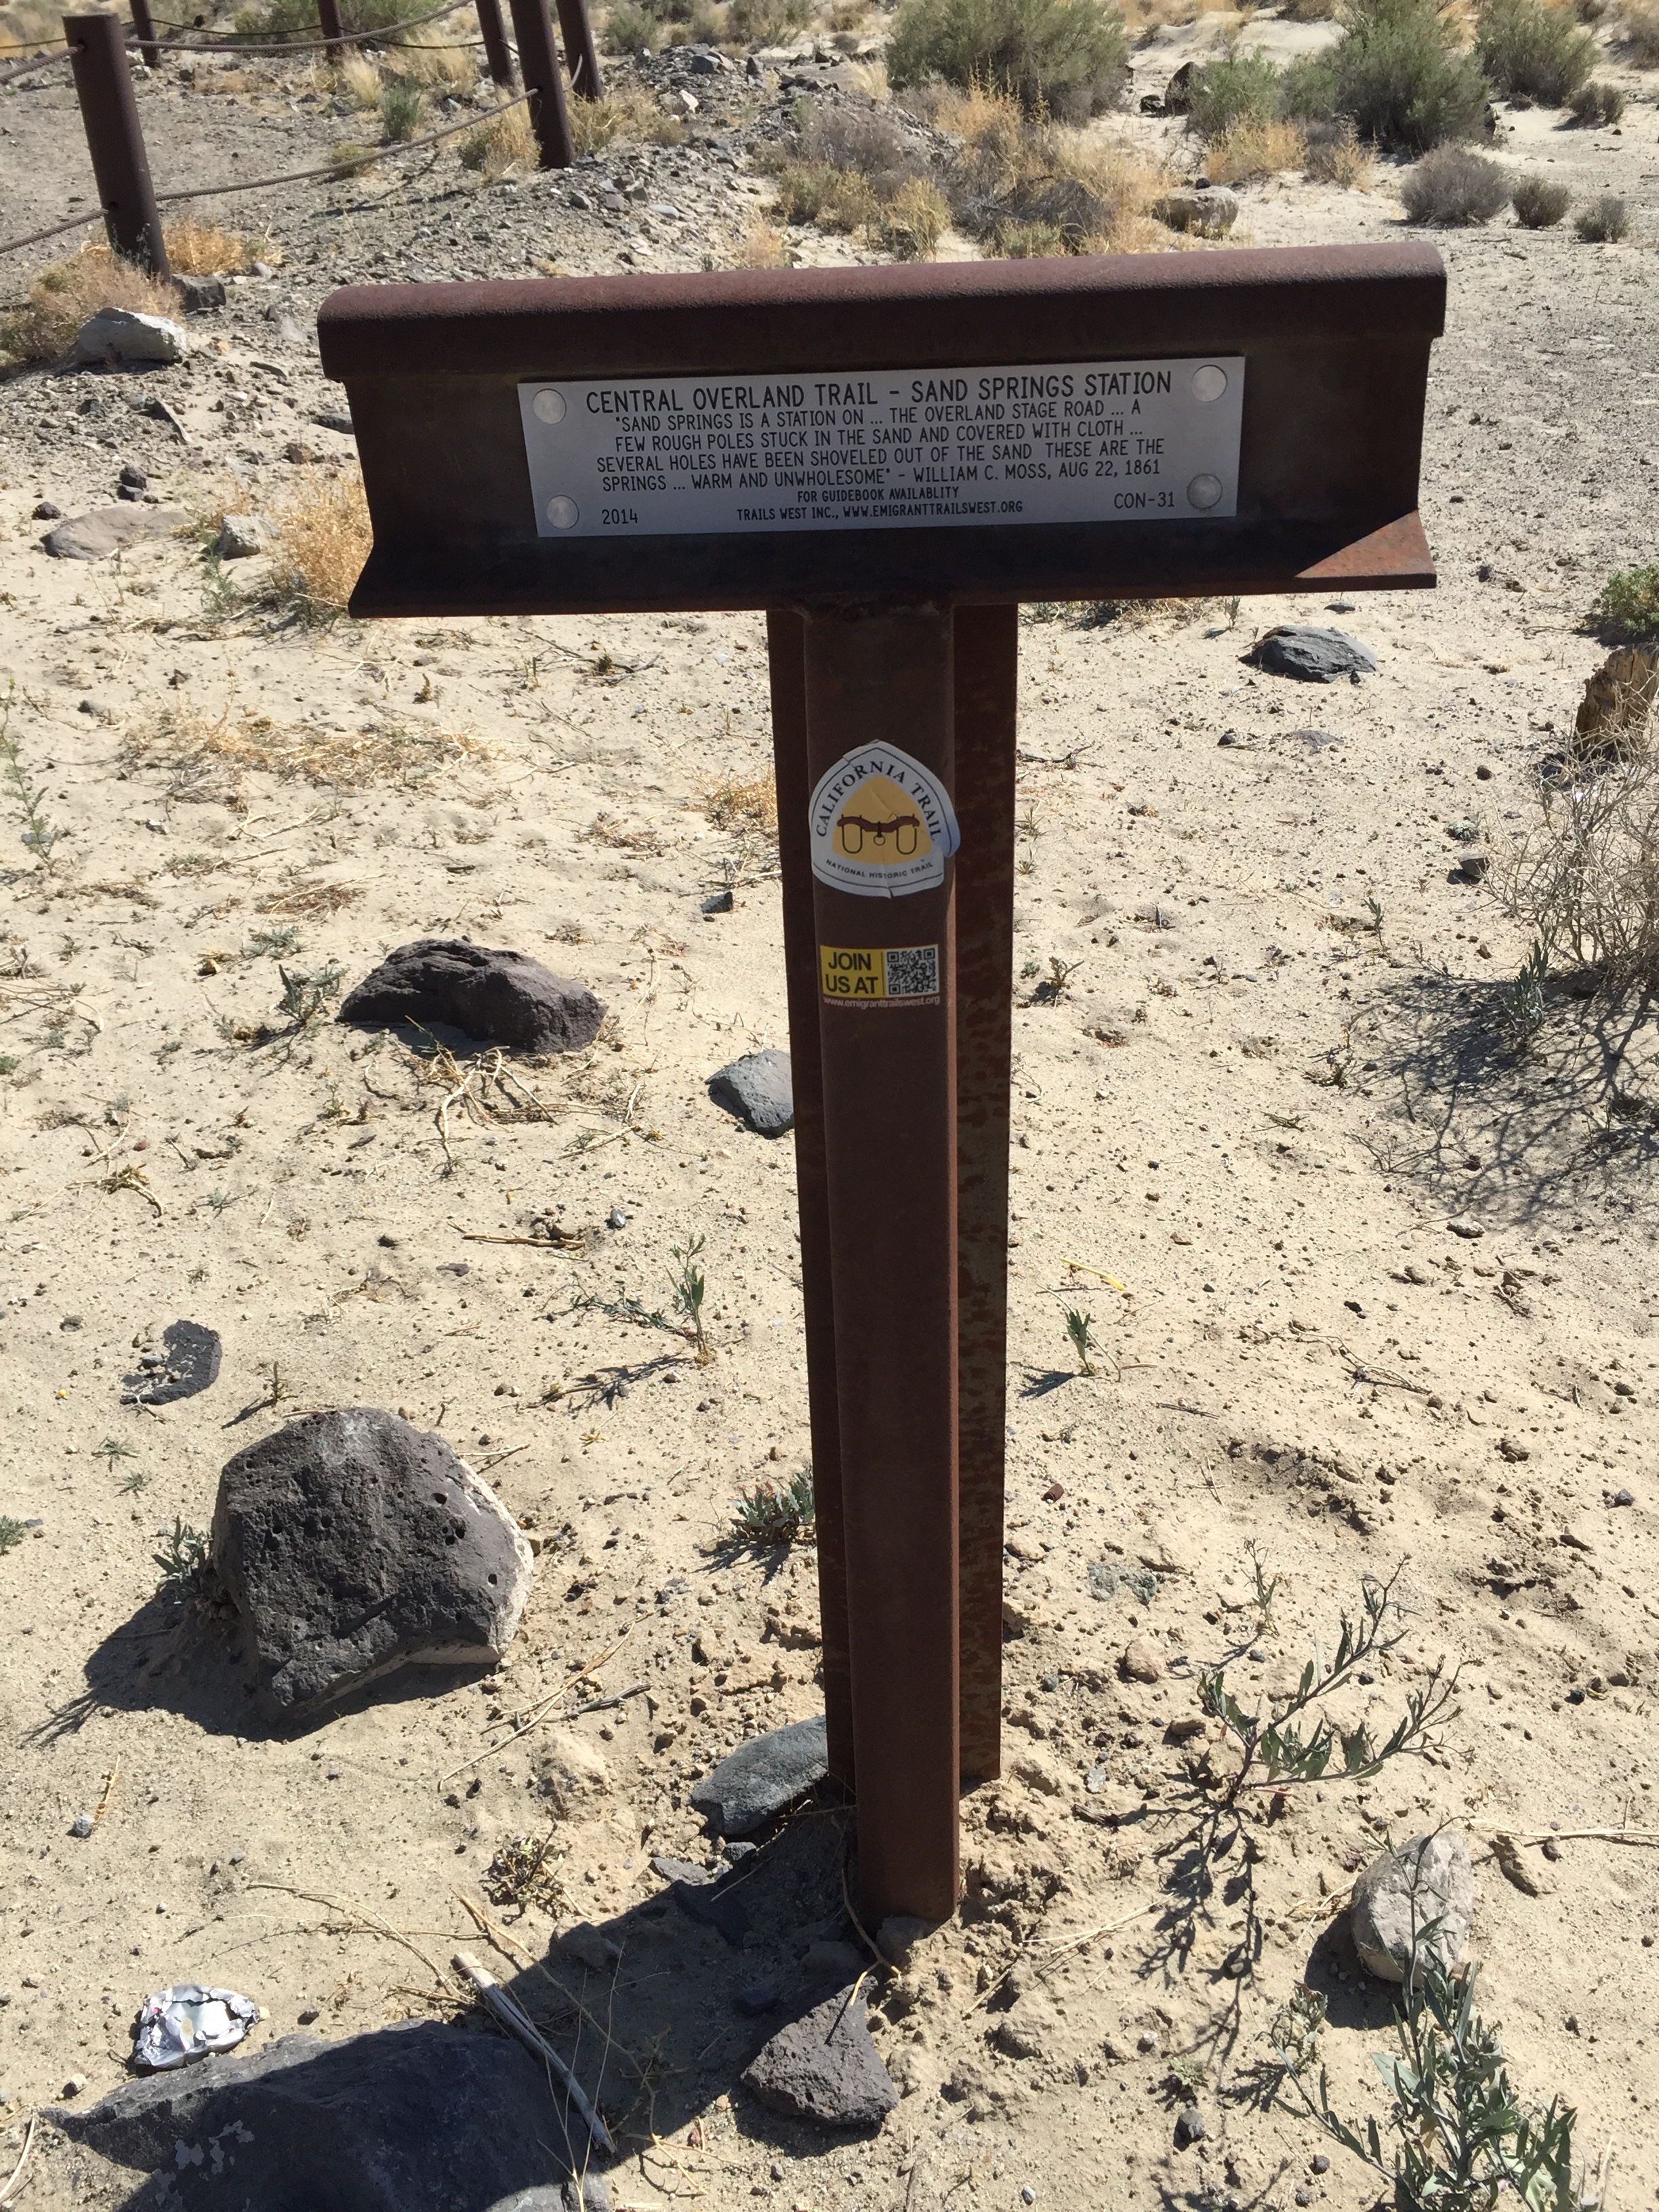 File:2015-04-02 15 47 03 Central Overland Trail - Sand Springs